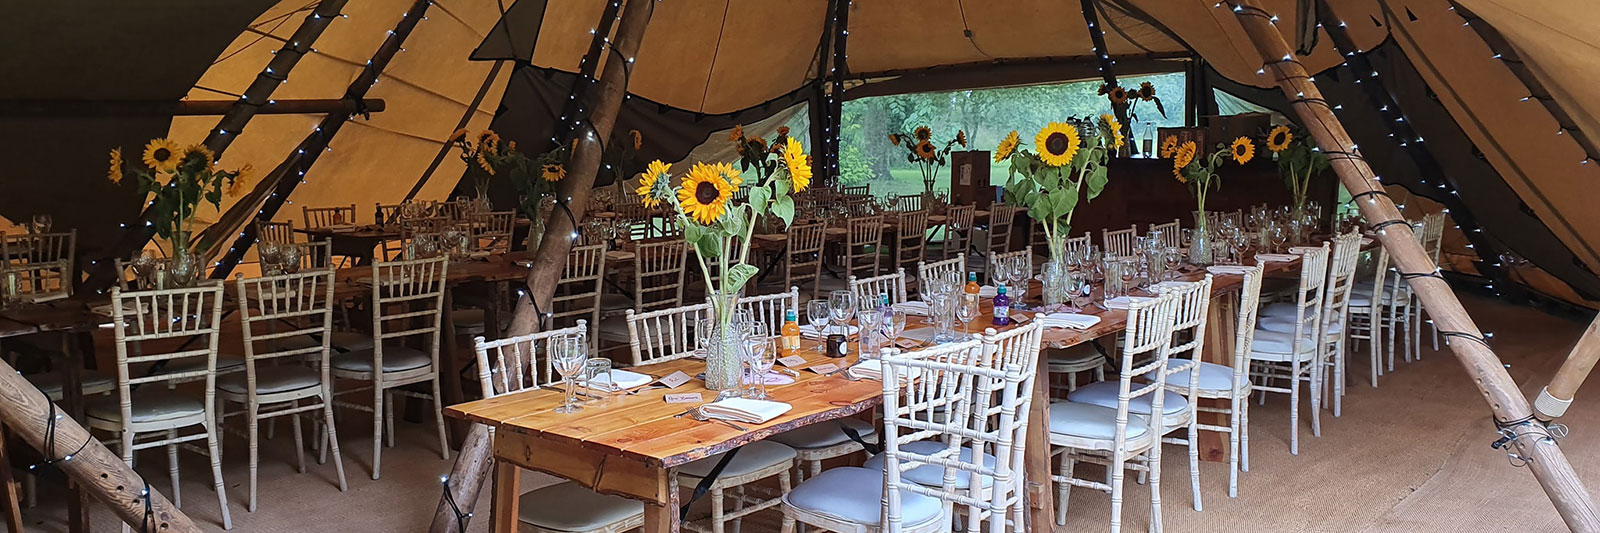 Function caterers event in a tent with tables laid out with vases of sunflowers